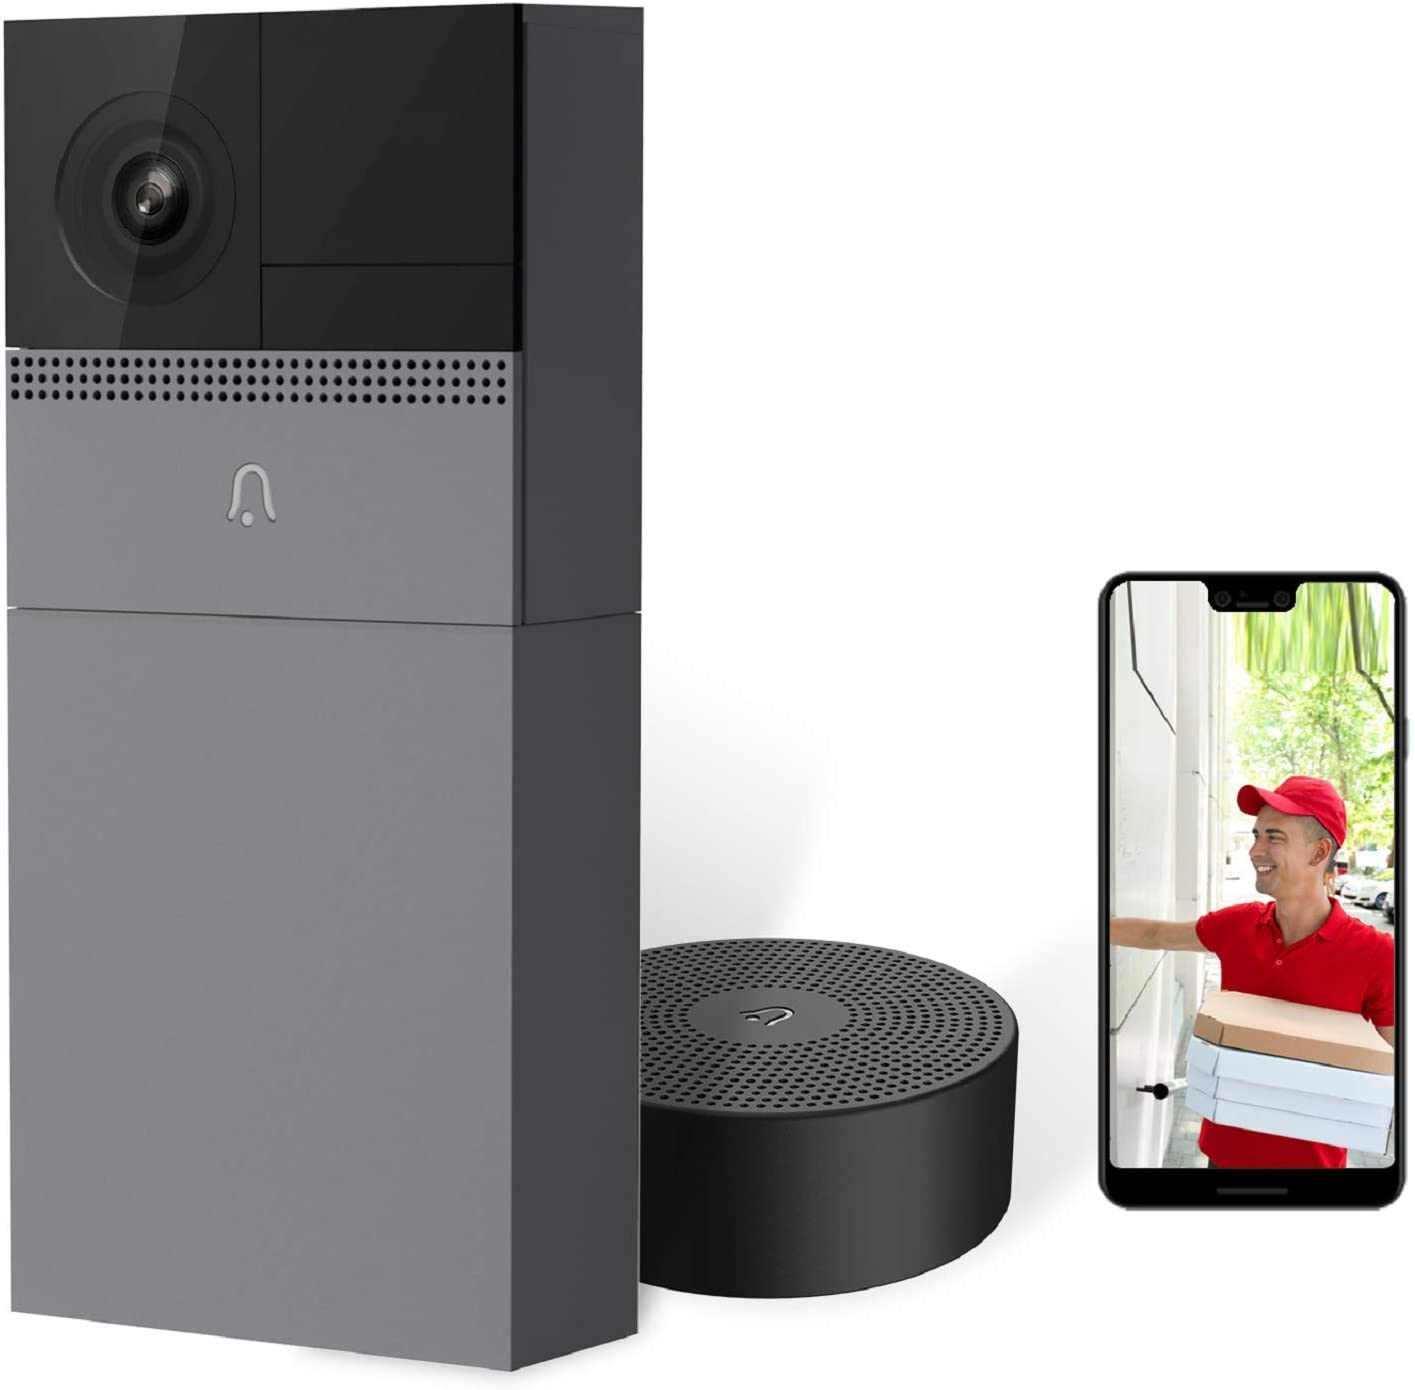 Wireless Security Video Doorbell with Camera, B1 Smart WIFI Door Bell with Motion Detector, Compatible with Alexa, Night Vision, IP65 Waterproof,USB Indoor Wireless Chime Included